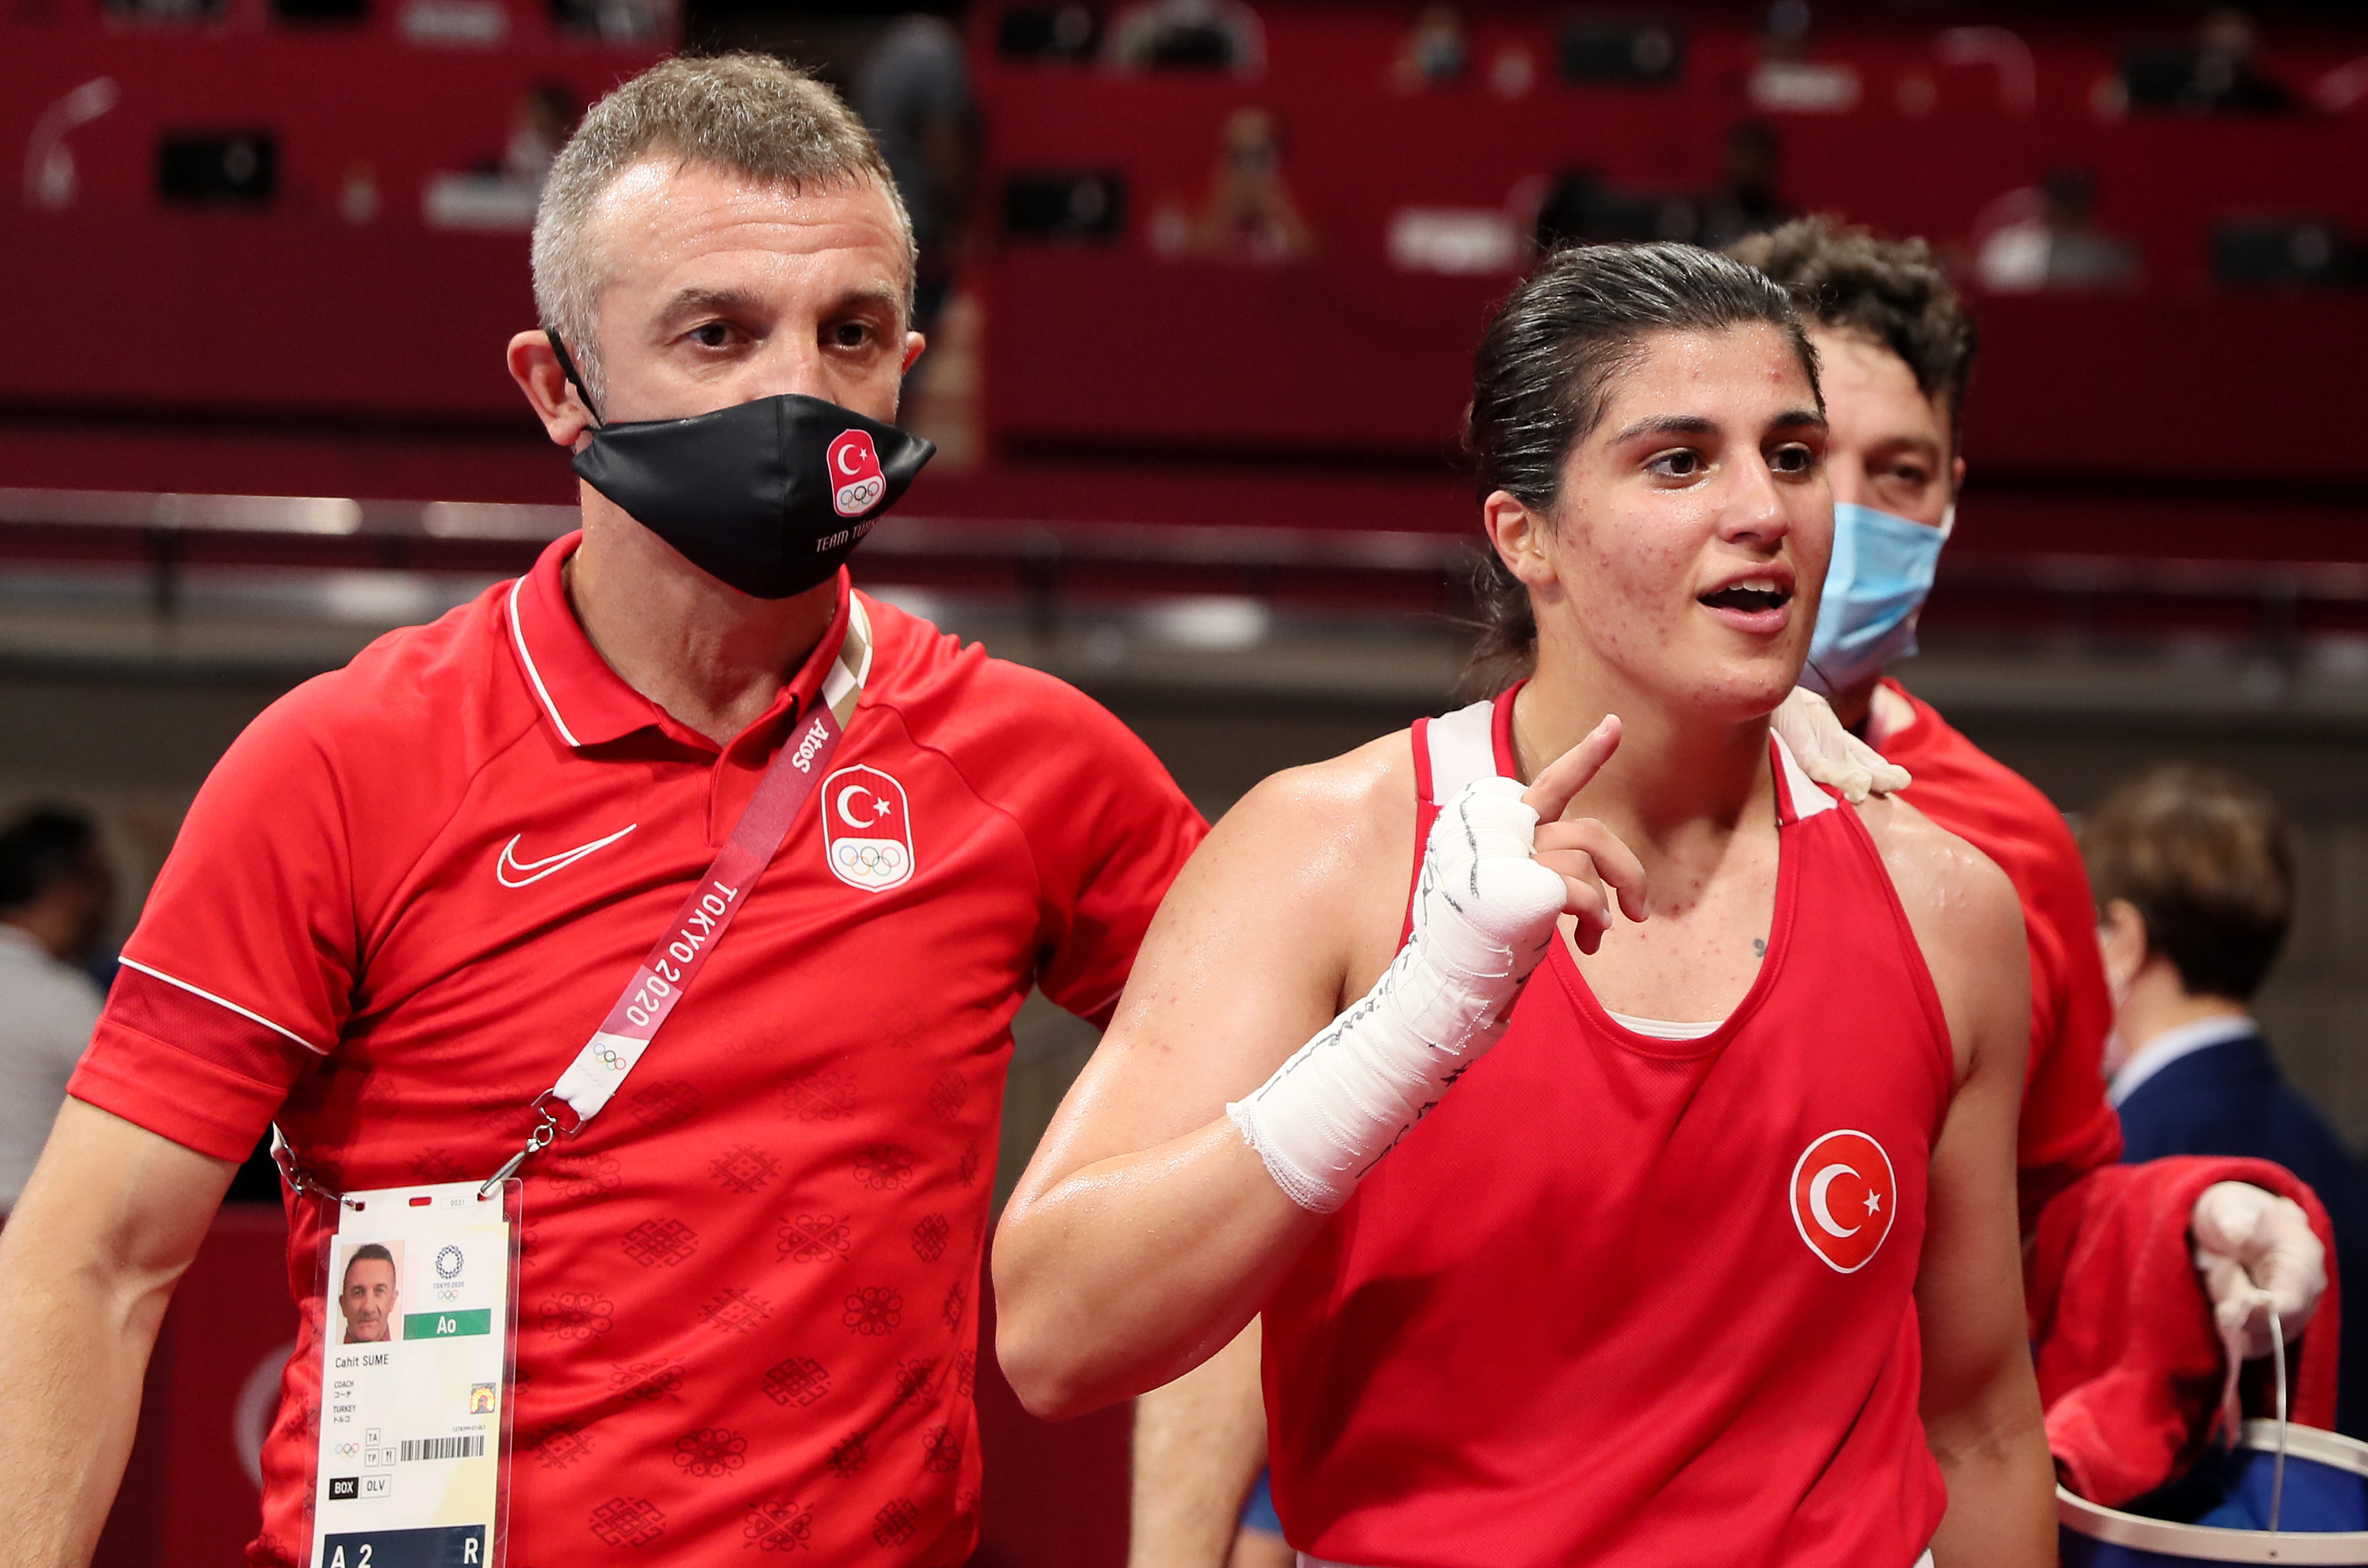 Busenaz Surmeneli of Team Turkey celebrates victory over Lovlina Borgohain of Team India during the Women's Welter (64-69kg) semi final on day twelve of the Tokyo 2020 Olympic Games at Kokugikan Arena on August 04, 2021 in Tokyo, Japan.